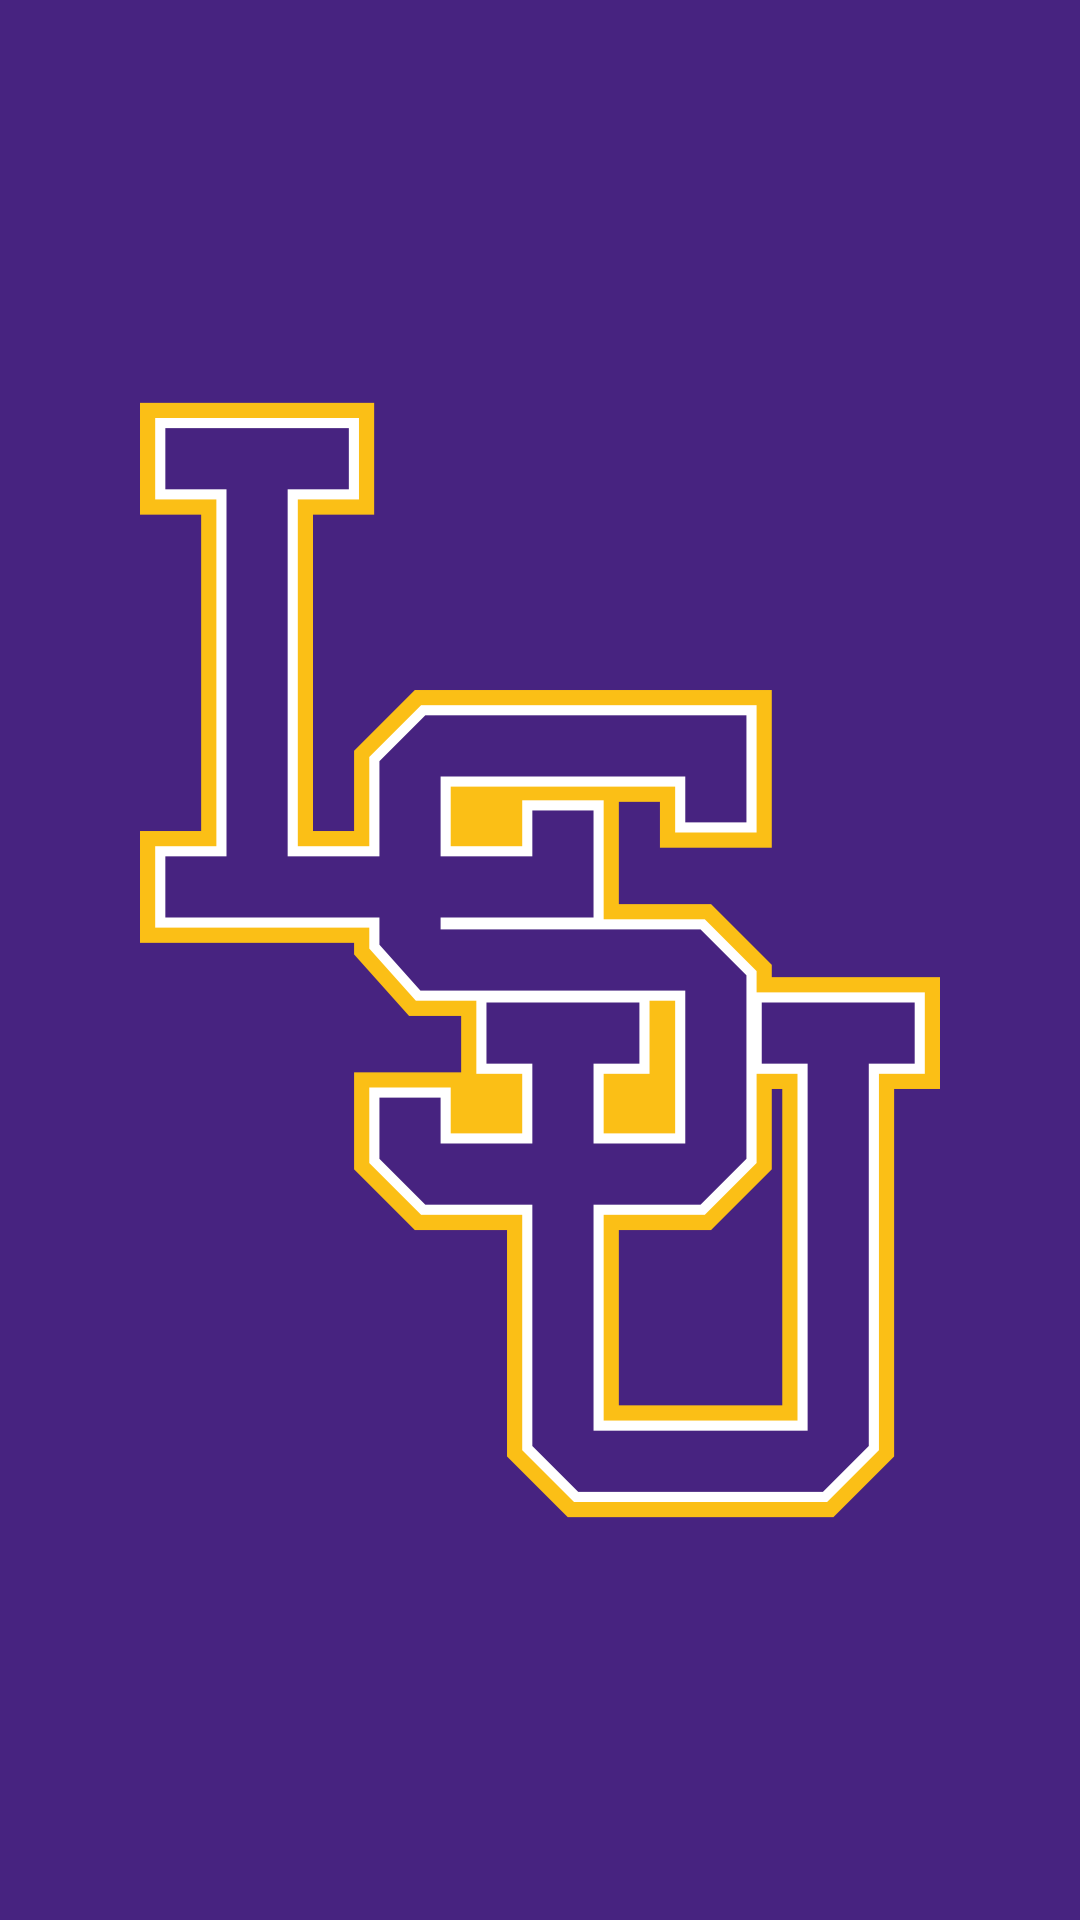 Lsu Backgrounds Png Free Lsu Backgrounds Png Transparent Images 63586 Pngio